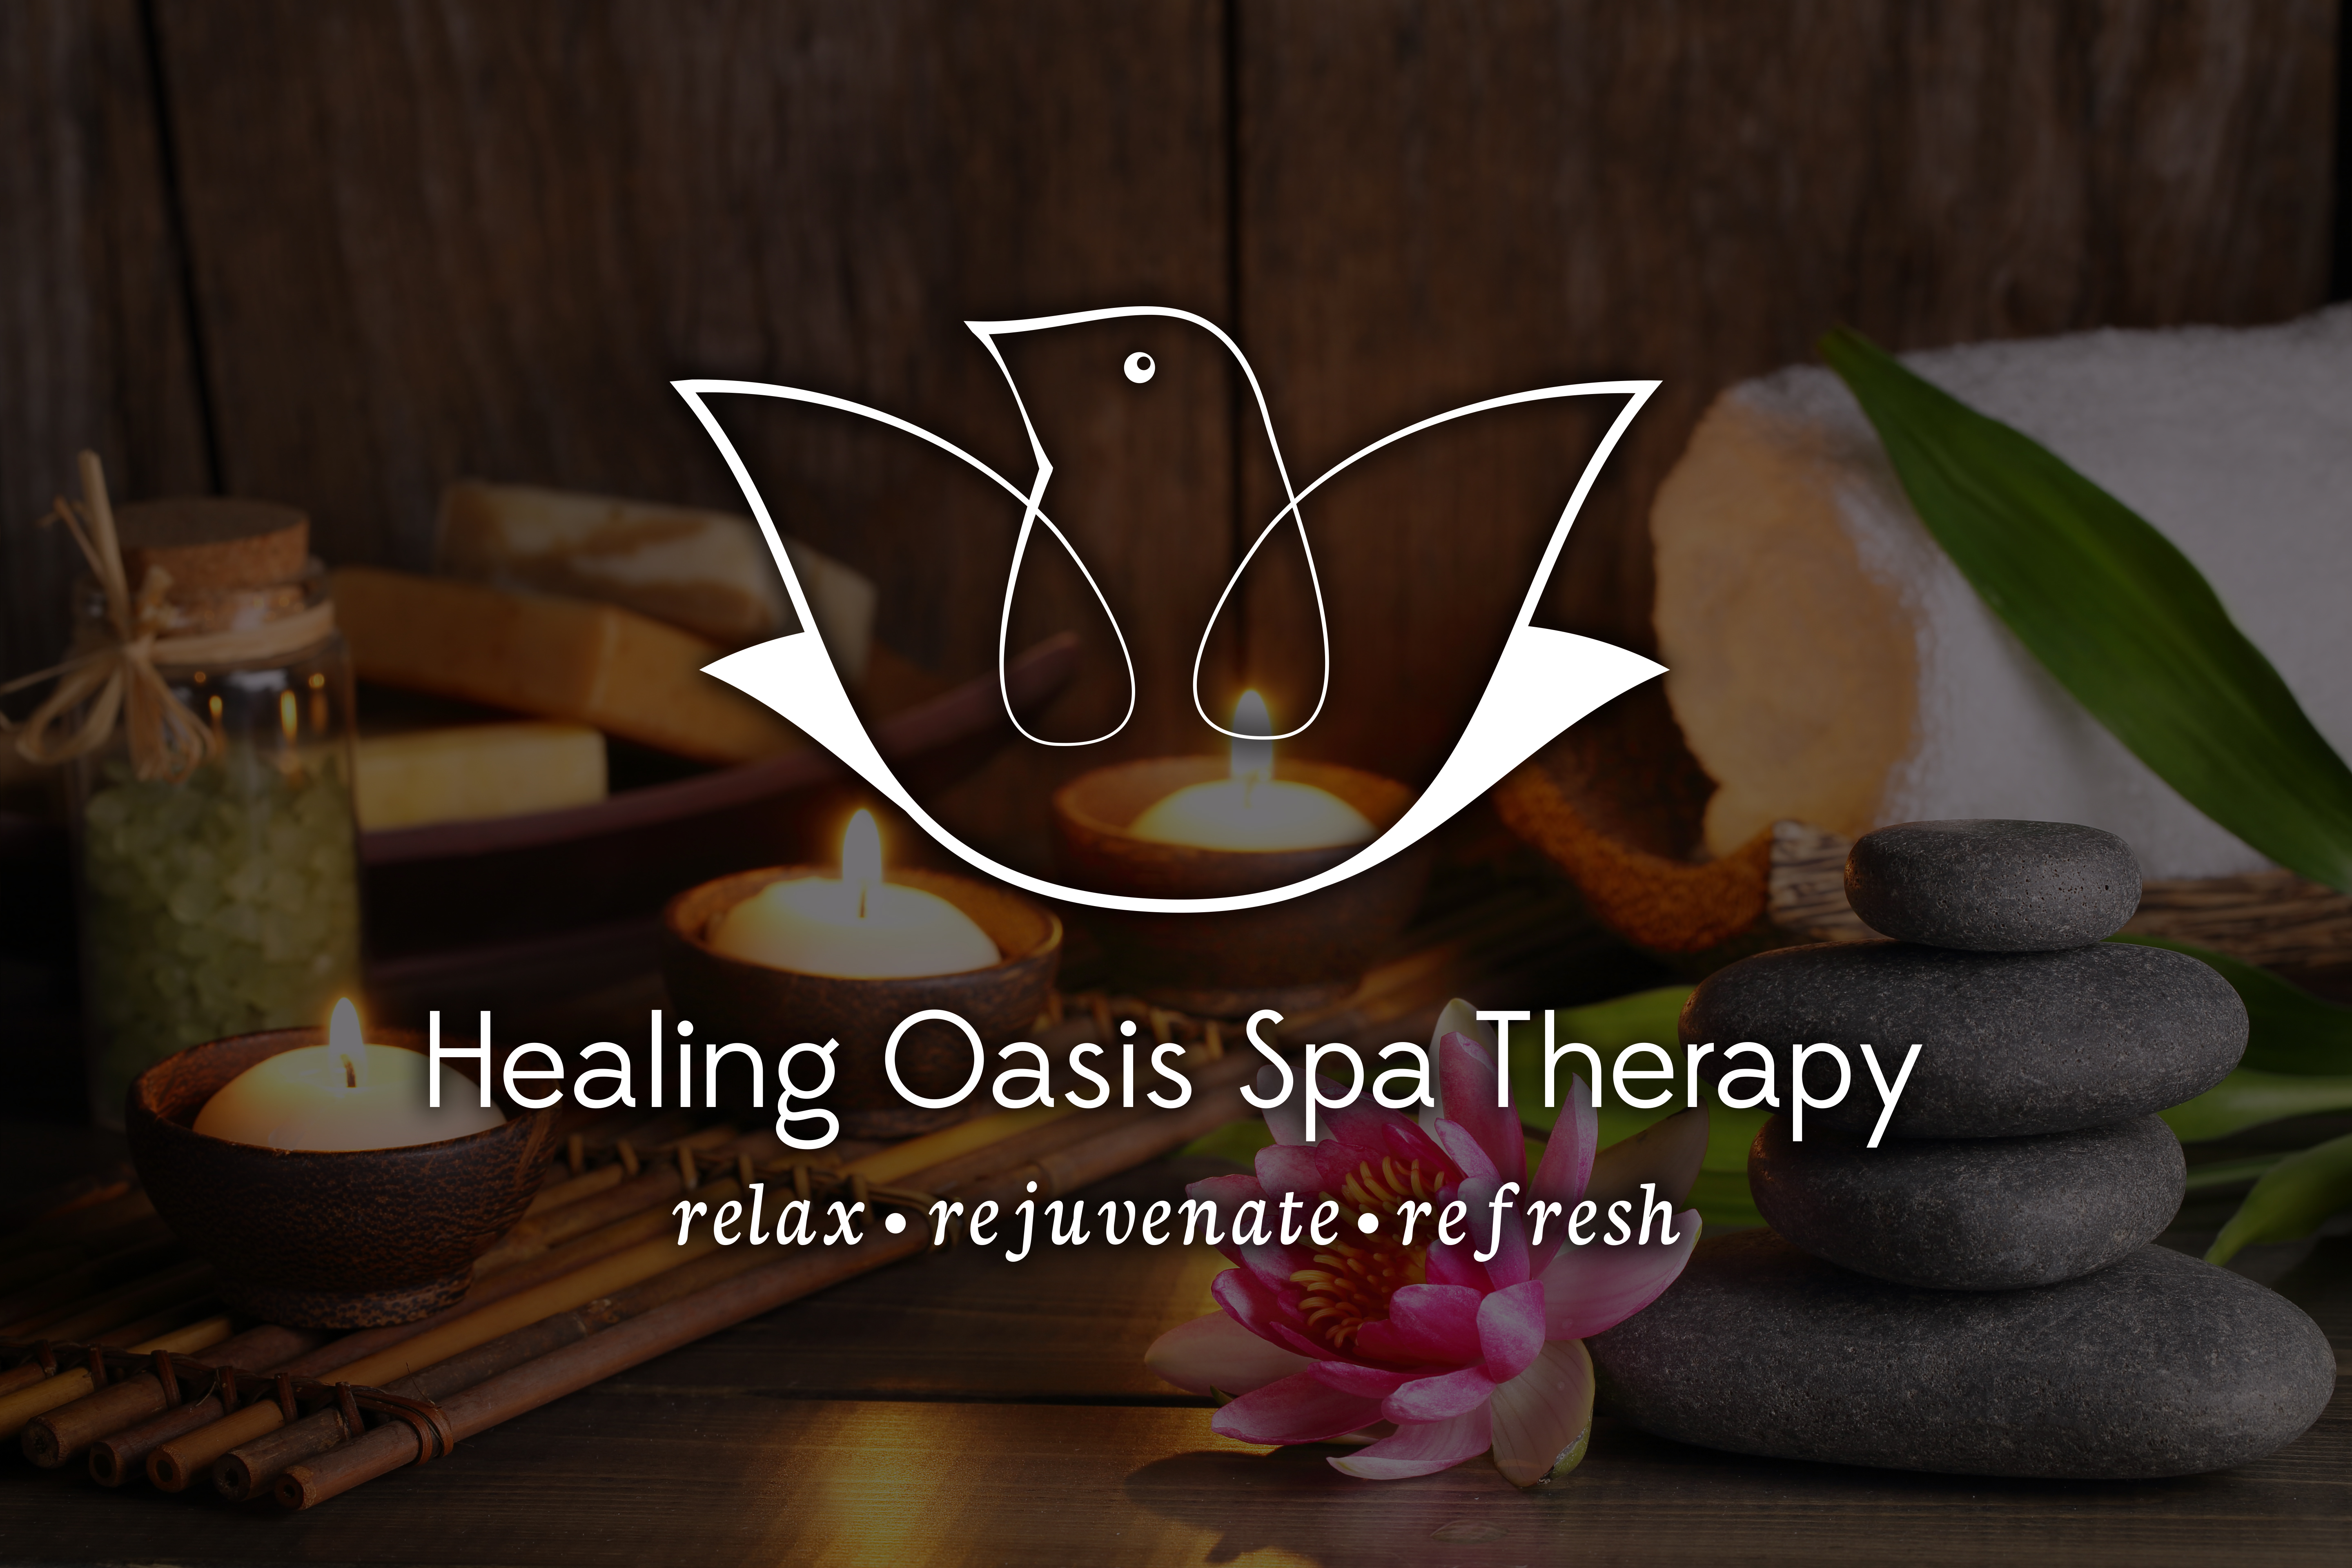 Healing Oasis Spa Therapy Logo